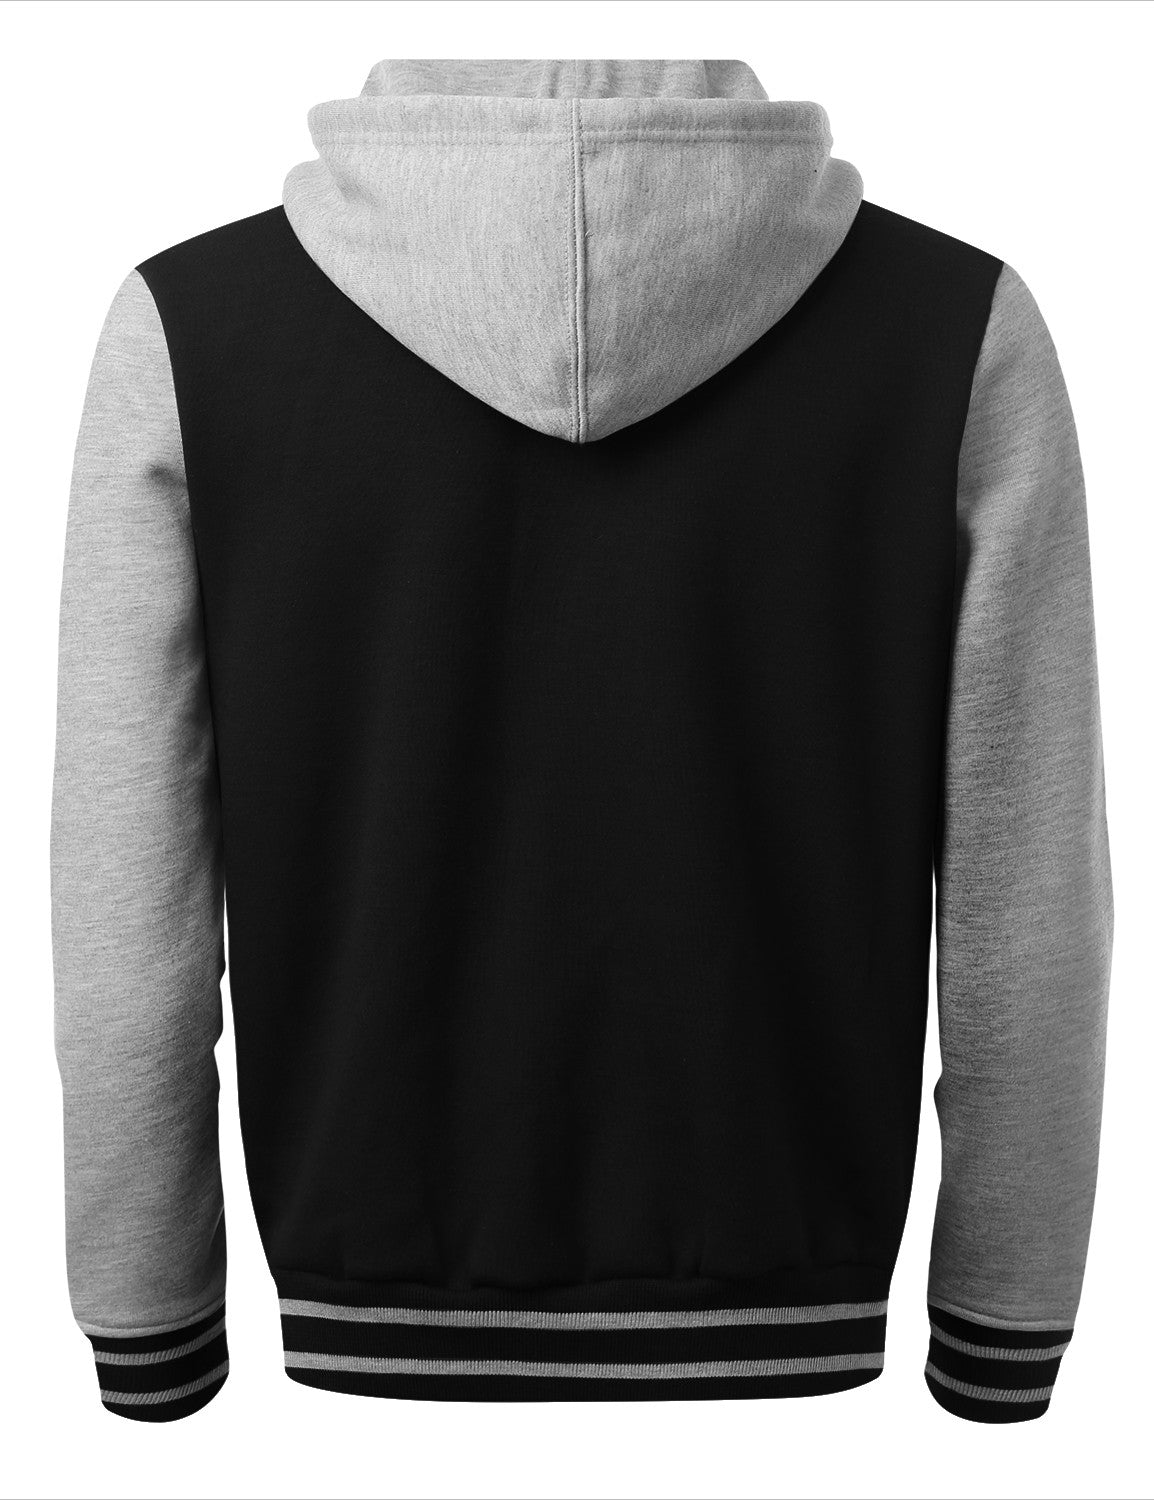 BLACKHGRAY Baseball Hoodie Jacket - URBANCREWS